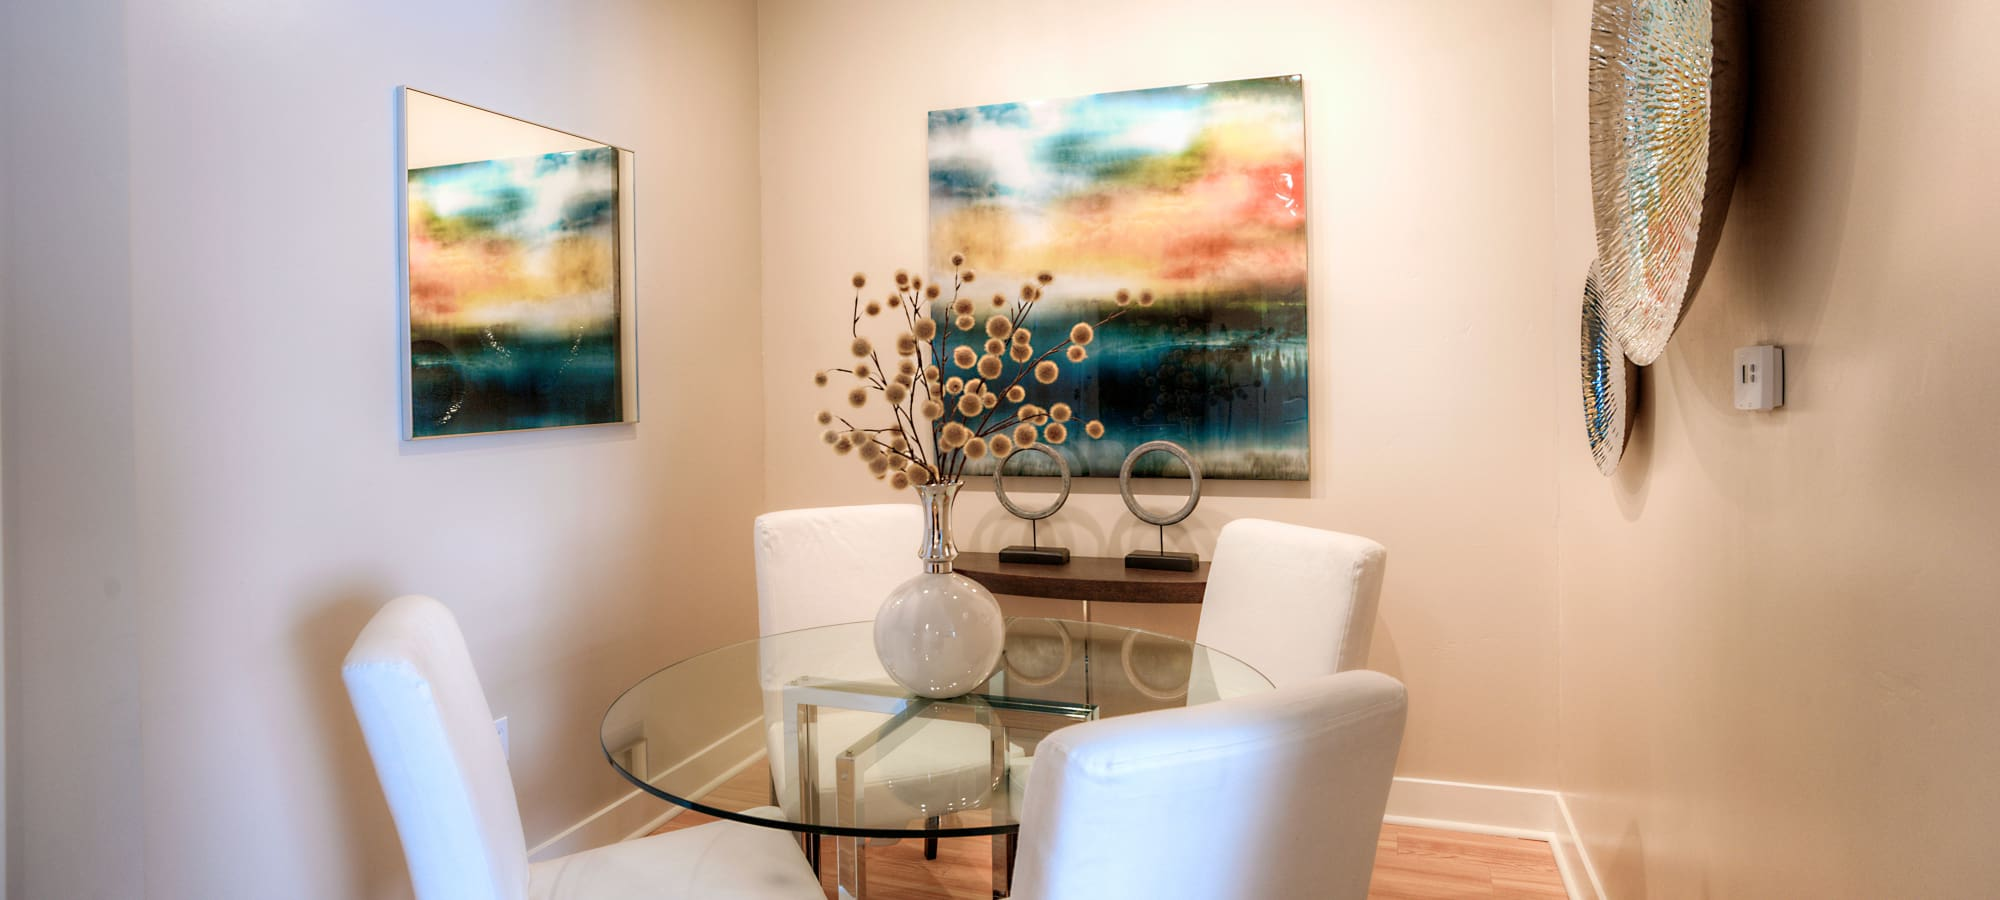 Dining nook with modern art in model home at Level at Sixteenth in Phoenix, Arizona